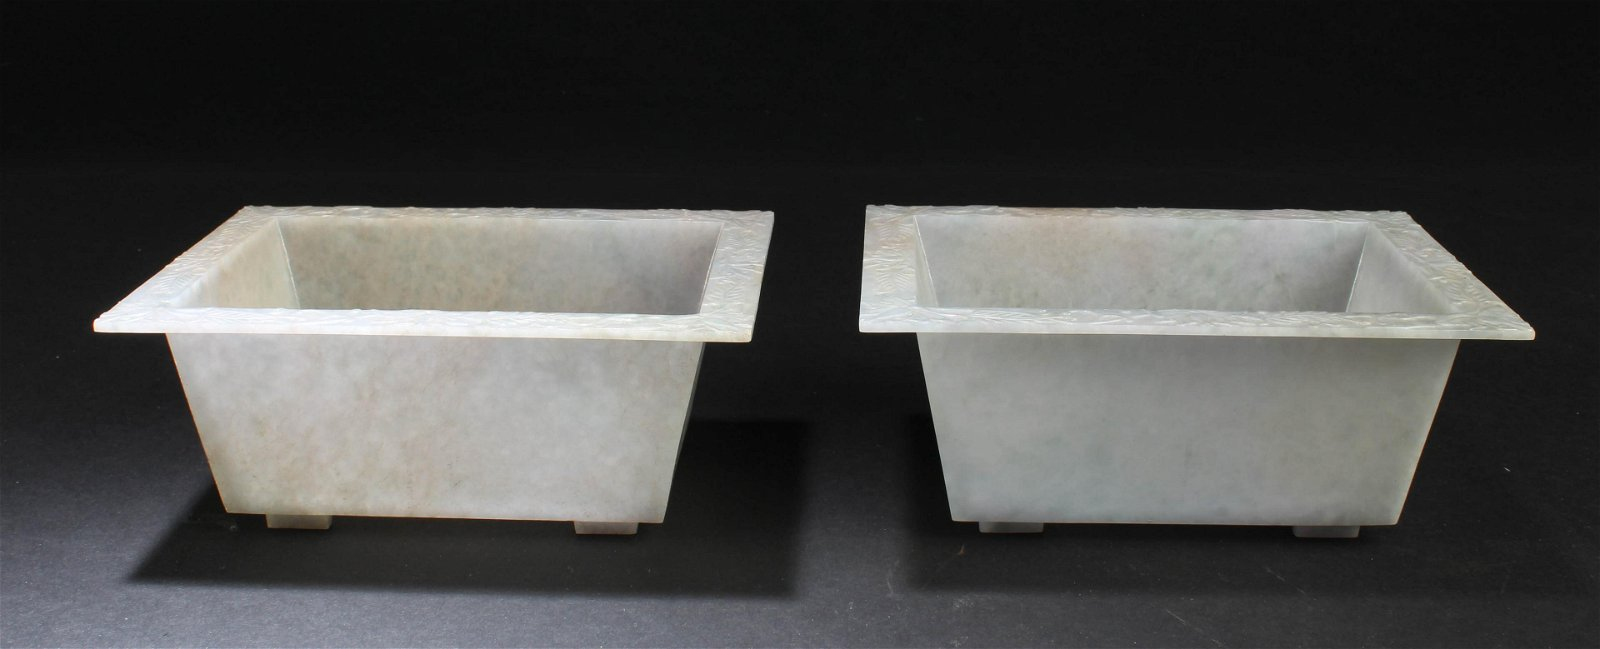 A Pair of Chinese Rectangular Shaped Carved Jade Pot